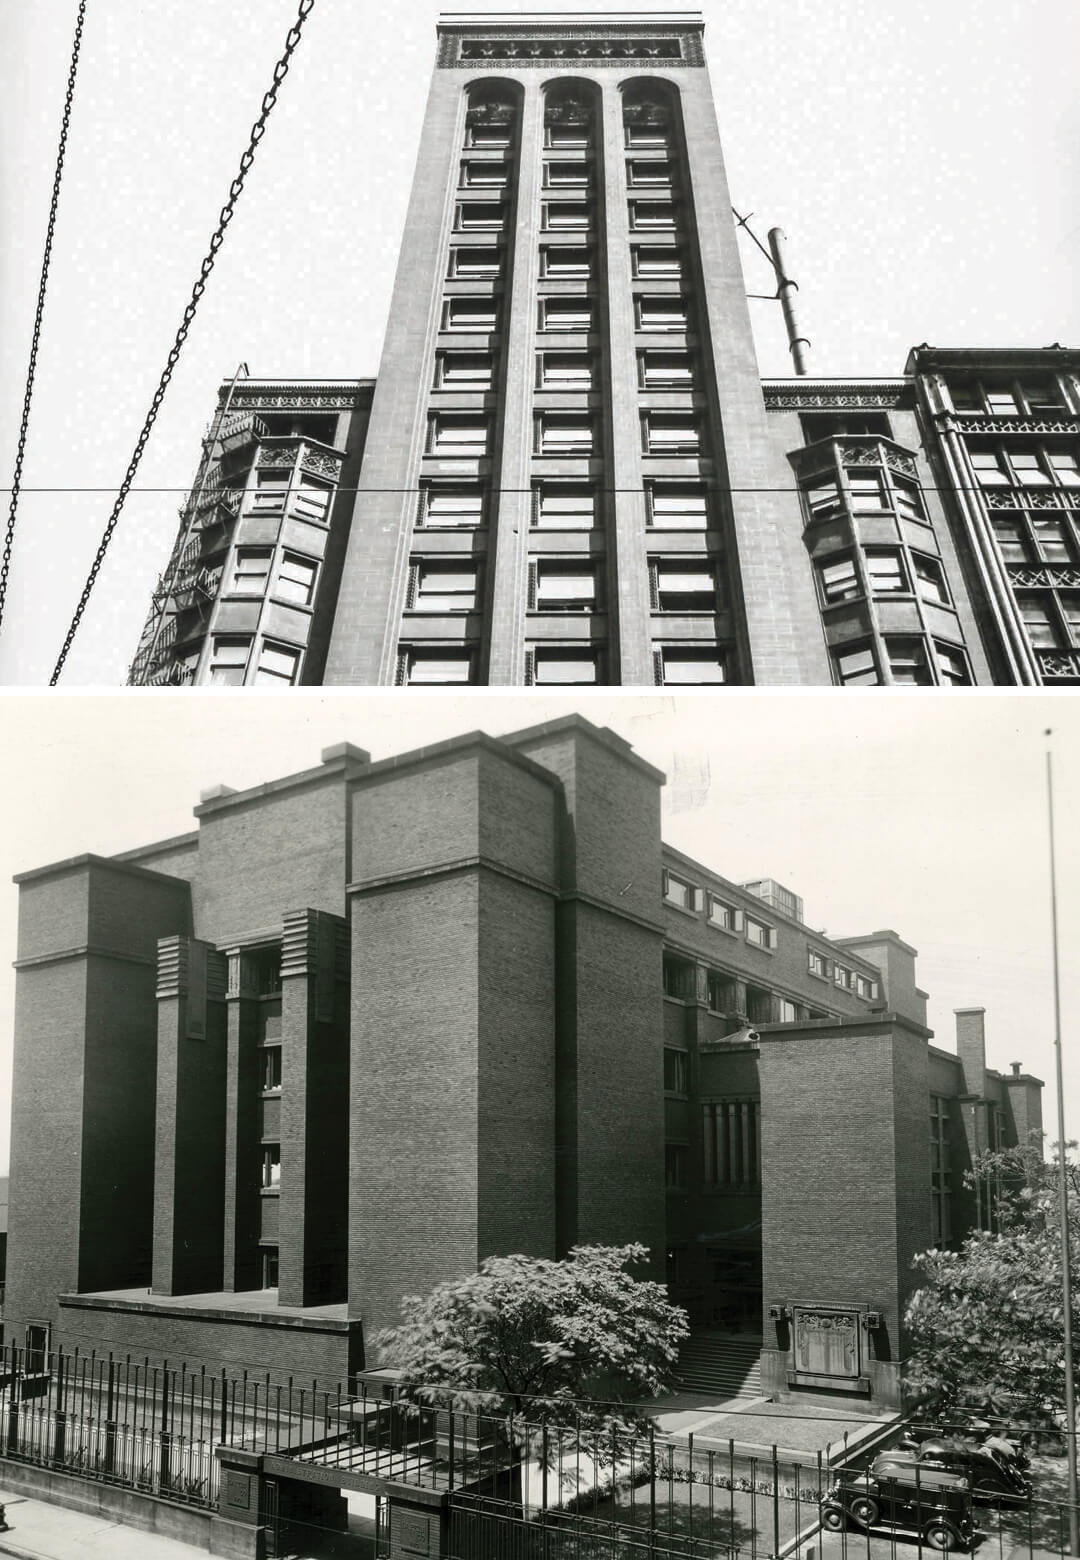 L to R: Garrick c. 1953, Frank Lloyd Wright, Larkin Administration Building, 1934 | Romanticism to Ruin: Two Lost Works of Sullivan and Wright | STIRworld